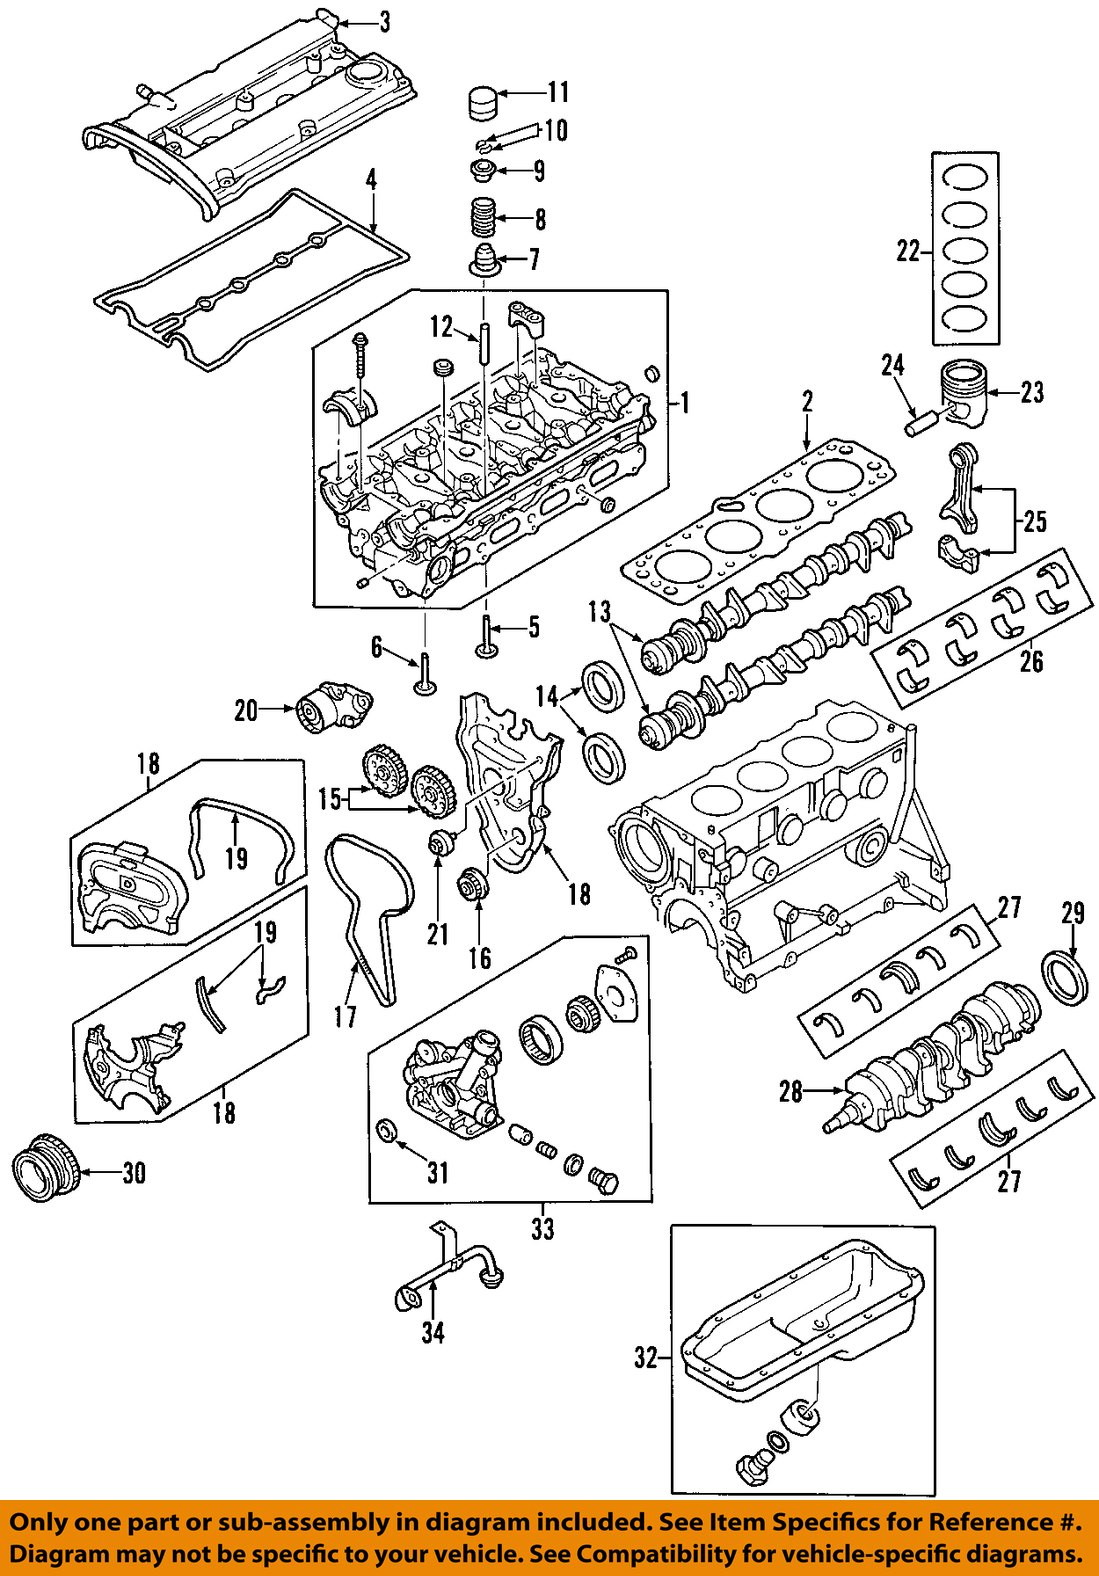 chevrolet gm oem 07 08 aveo engine timing belt 96858745 ebay on Chevy Volt Diagram 2007 Chevy Aveo Parts Diagram for 17 on diagram only genuine oe factory original item